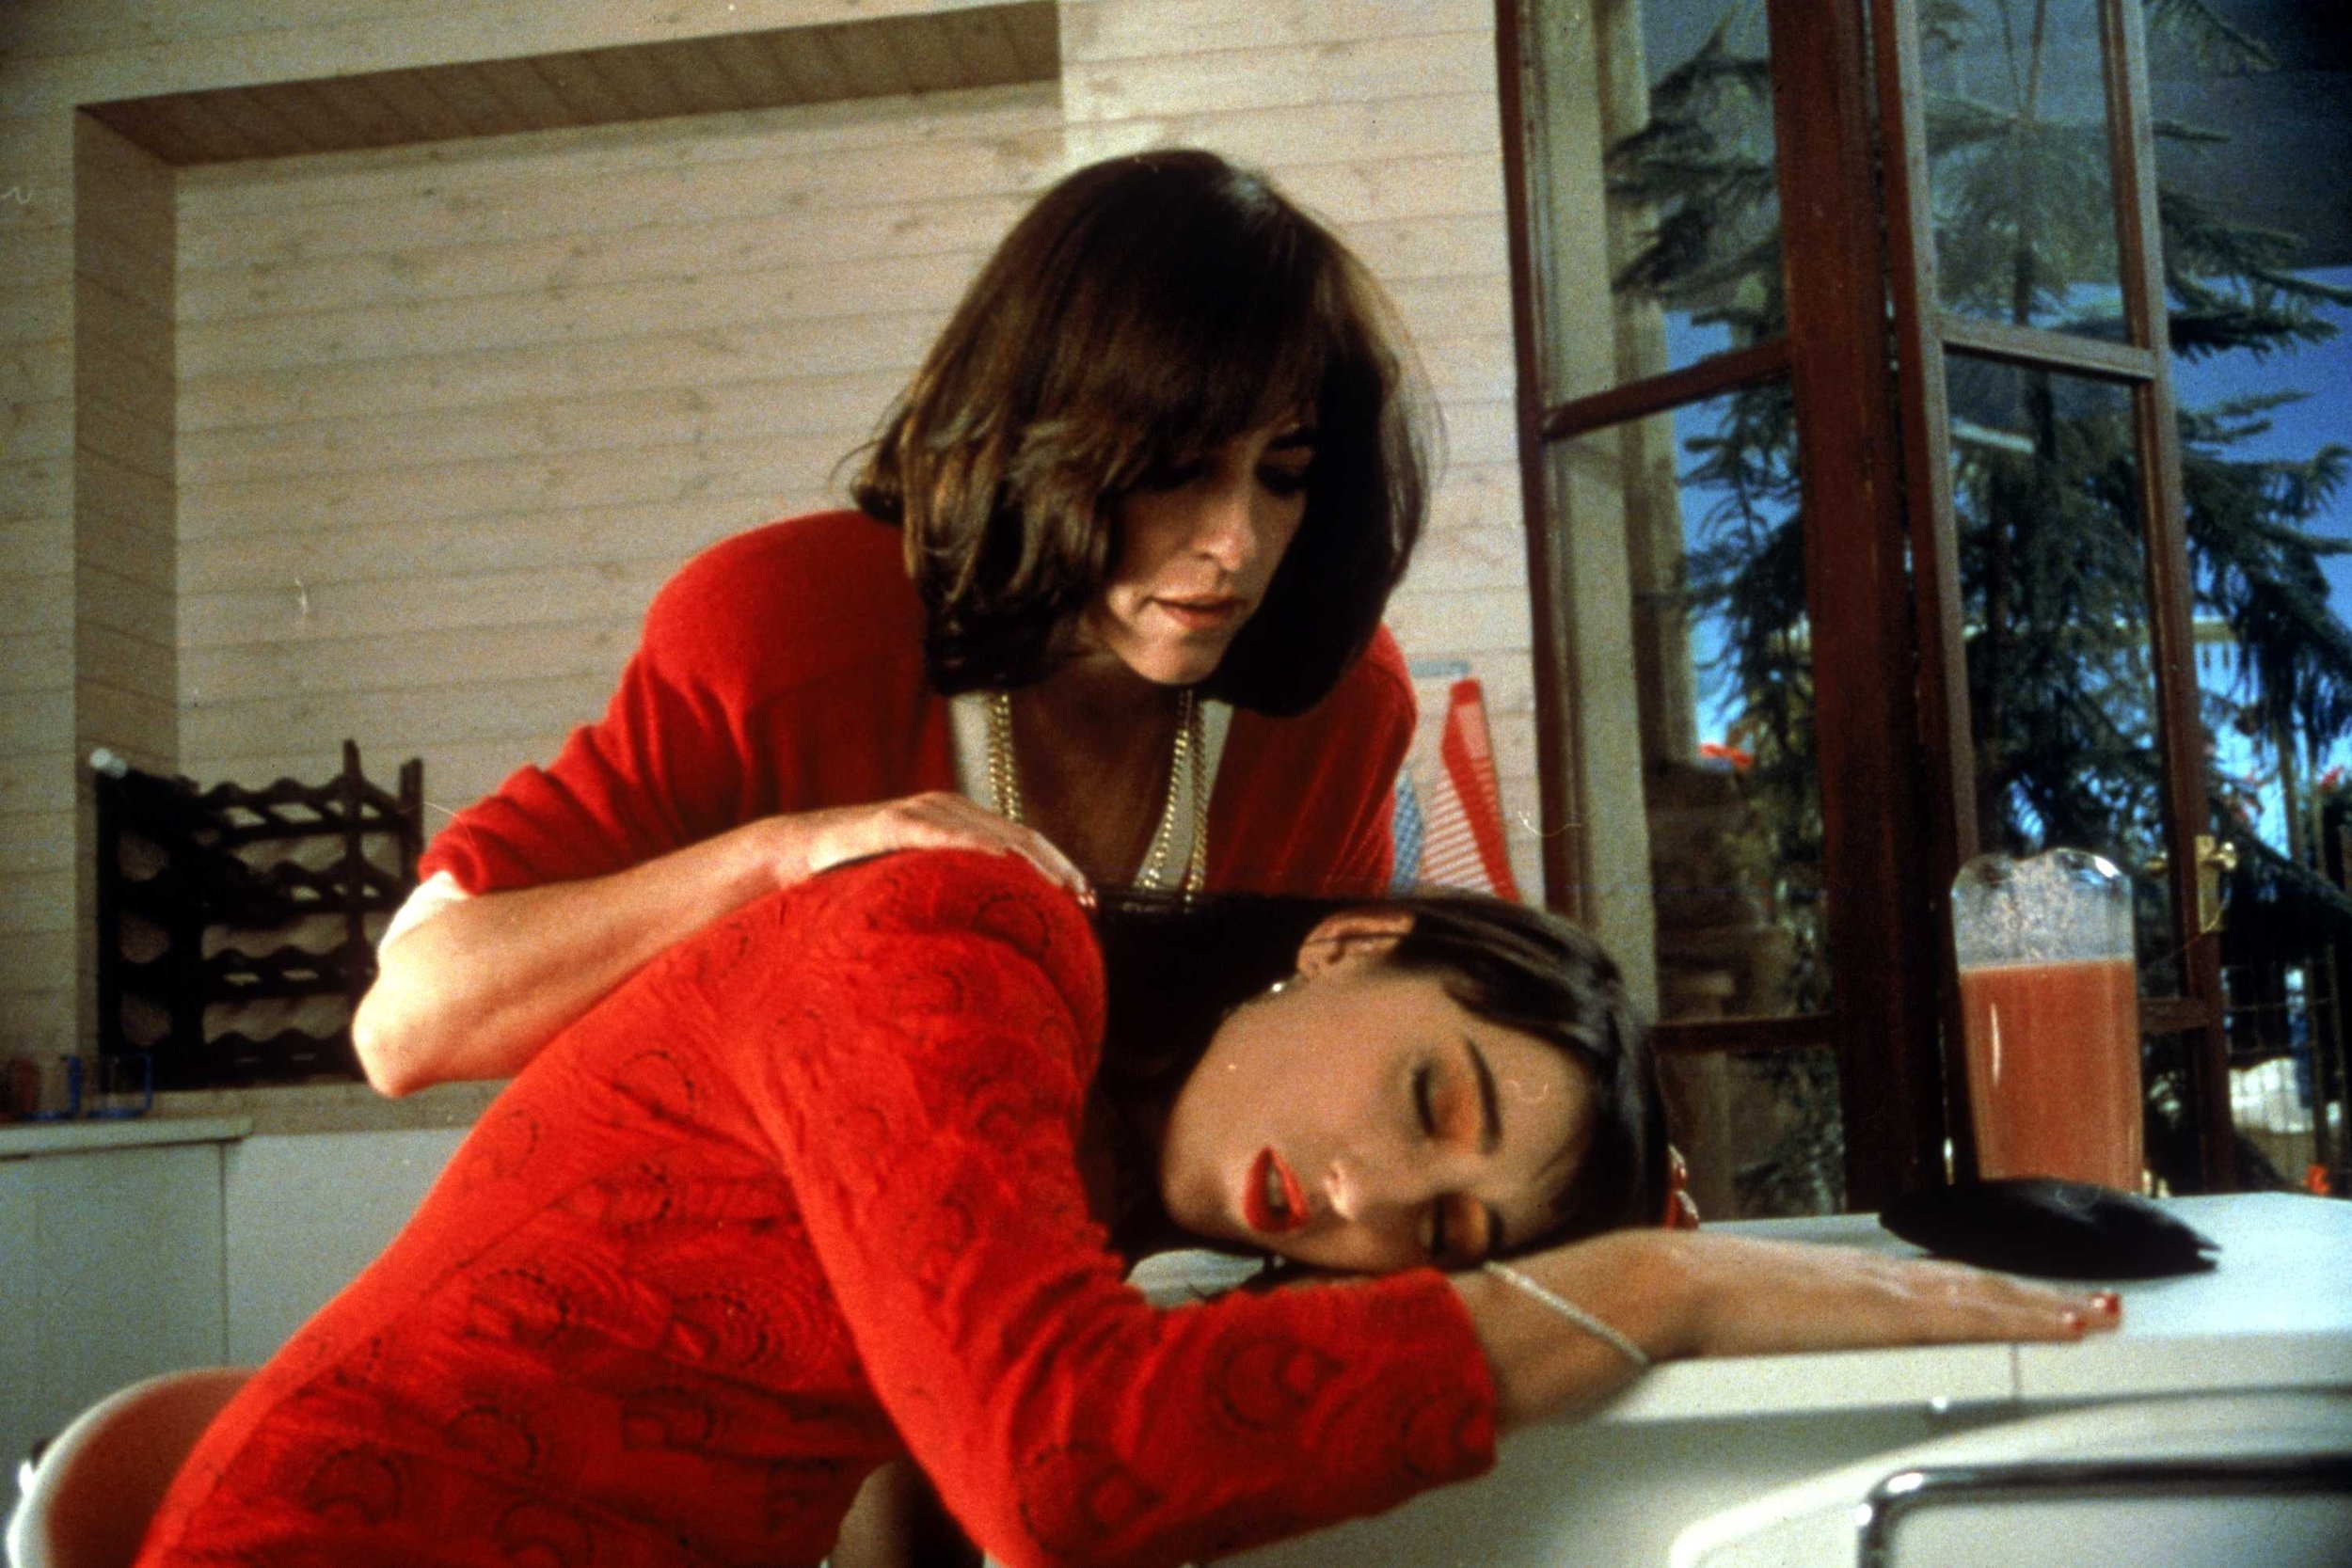 Women on the Verge of a Nervous Breakdown  ( Mujeres al Borde de un Ataque de Nervios , 1988)was the breakout success that drew mainstream attention to Almodóvar's idiosyncratic films, as well as making Carmen Maura and Rossy de Palma into illustrious stars of Spain's film and fashion worlds,respectively.